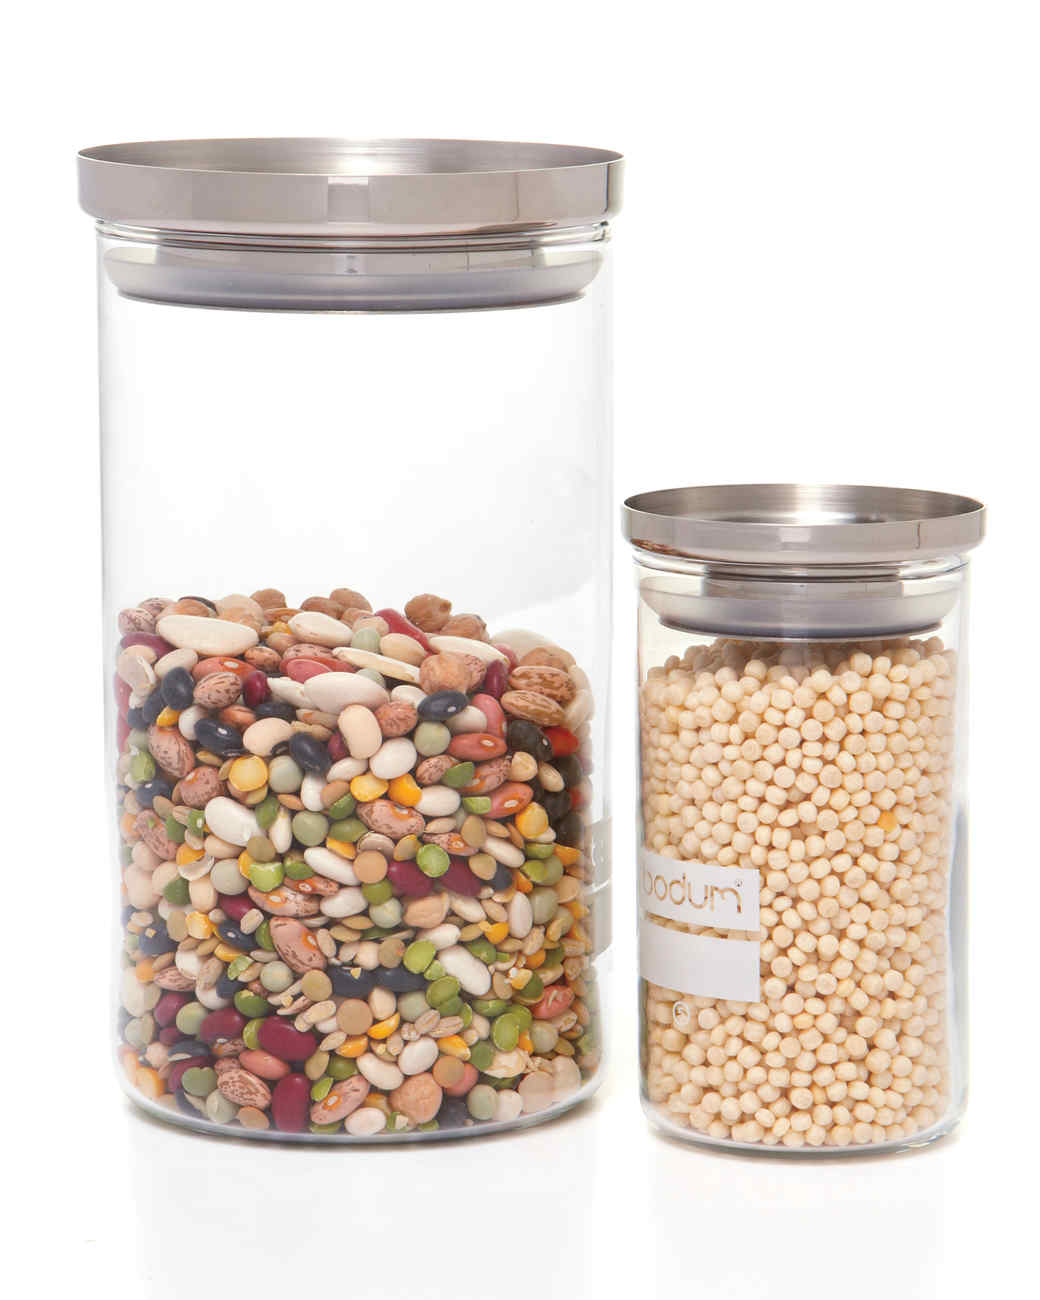 canisters-146-mld110351.jpg